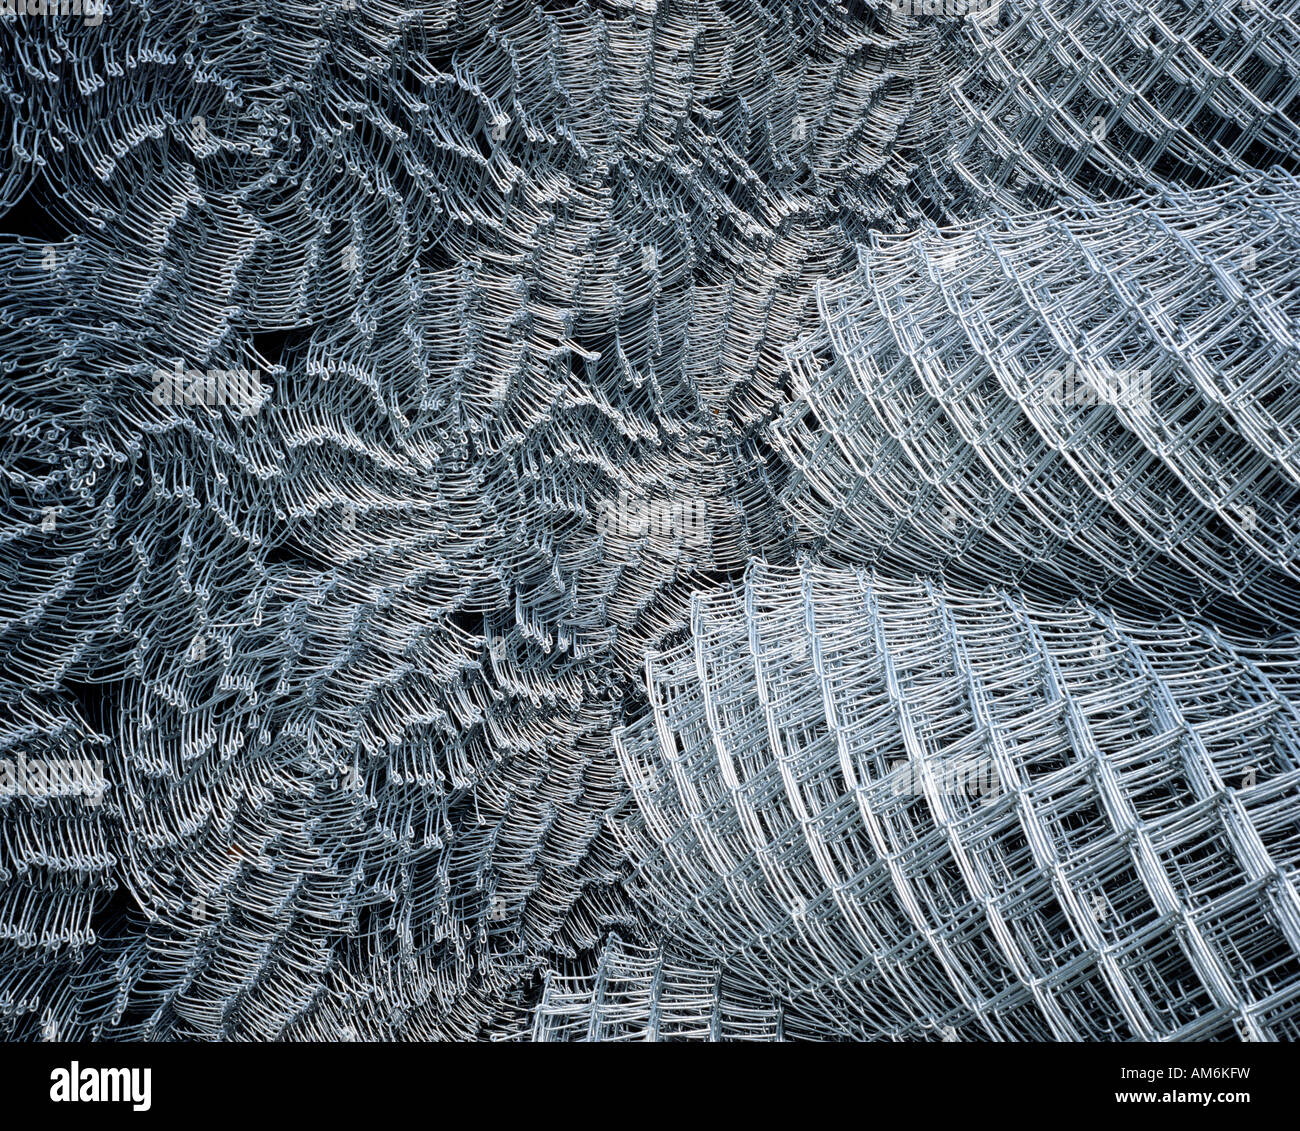 Rolled Wire Mesh Stock Photos & Rolled Wire Mesh Stock Images - Alamy